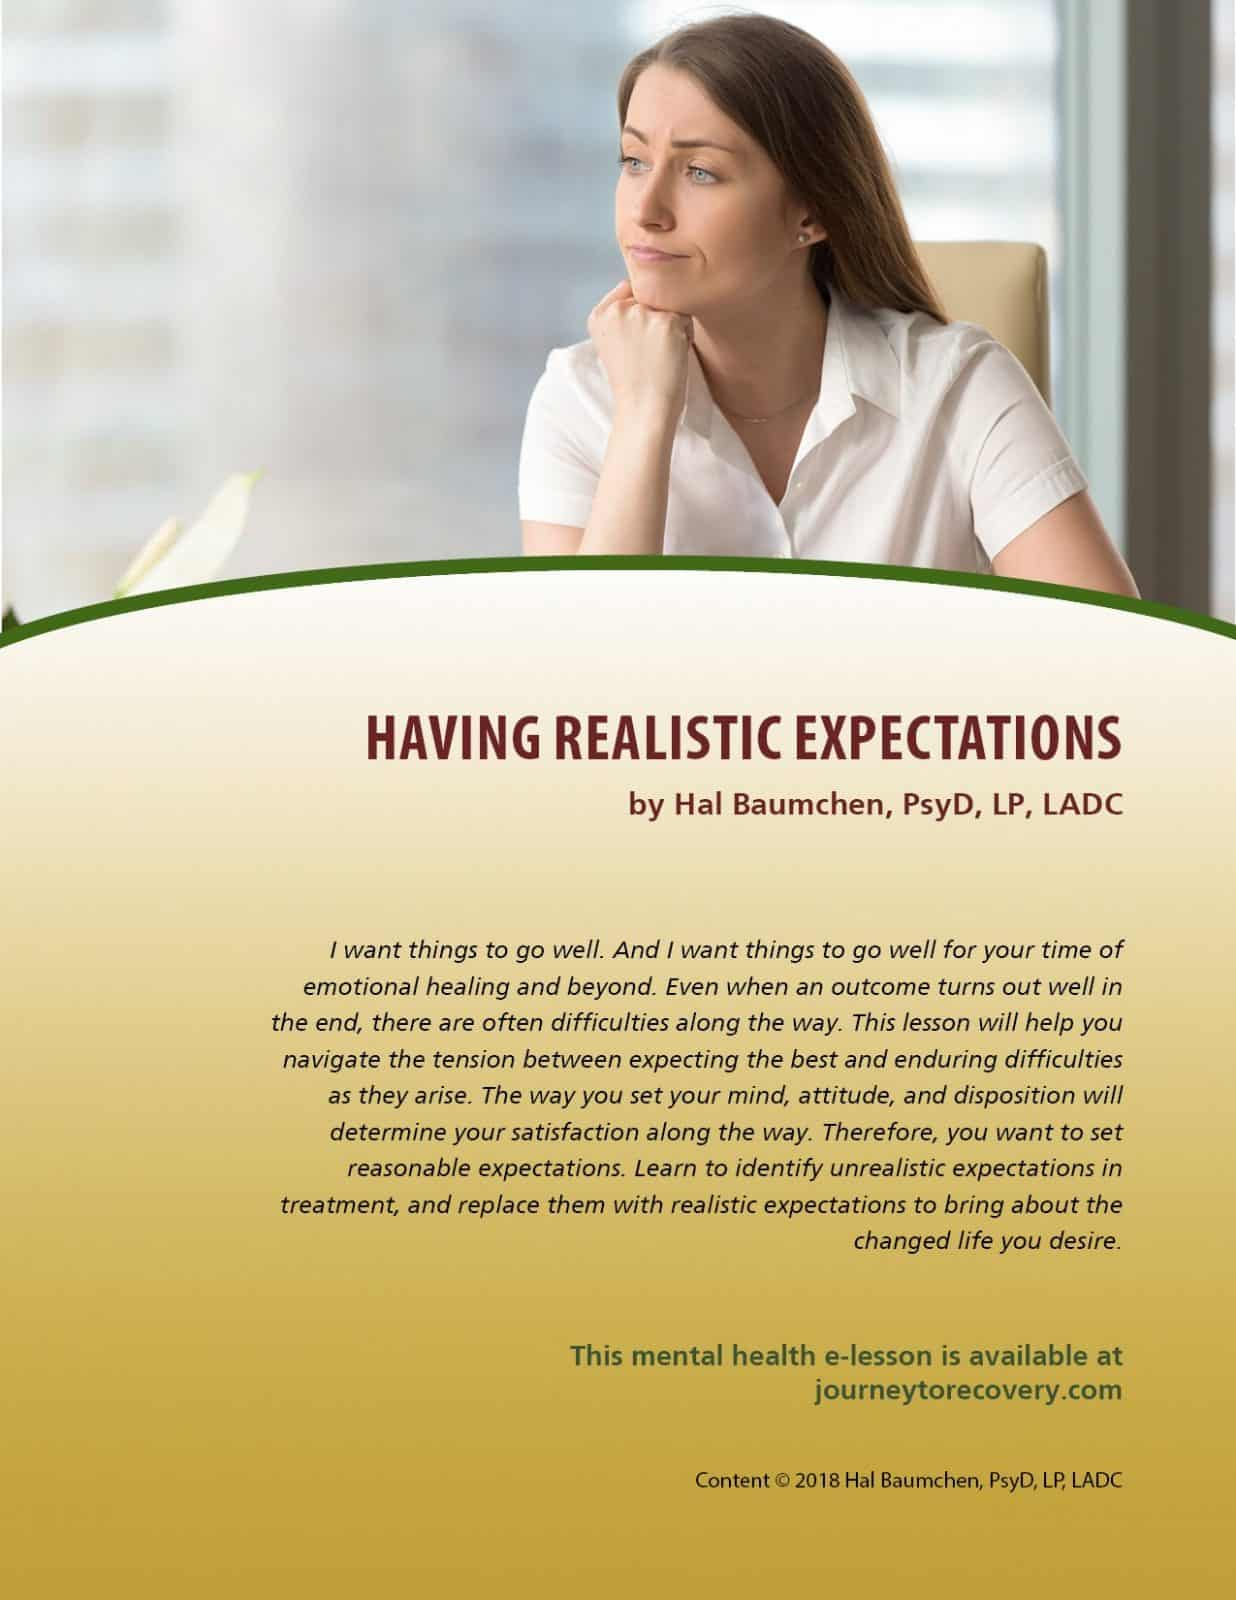 Having Realistic Expectations (MH Lesson)